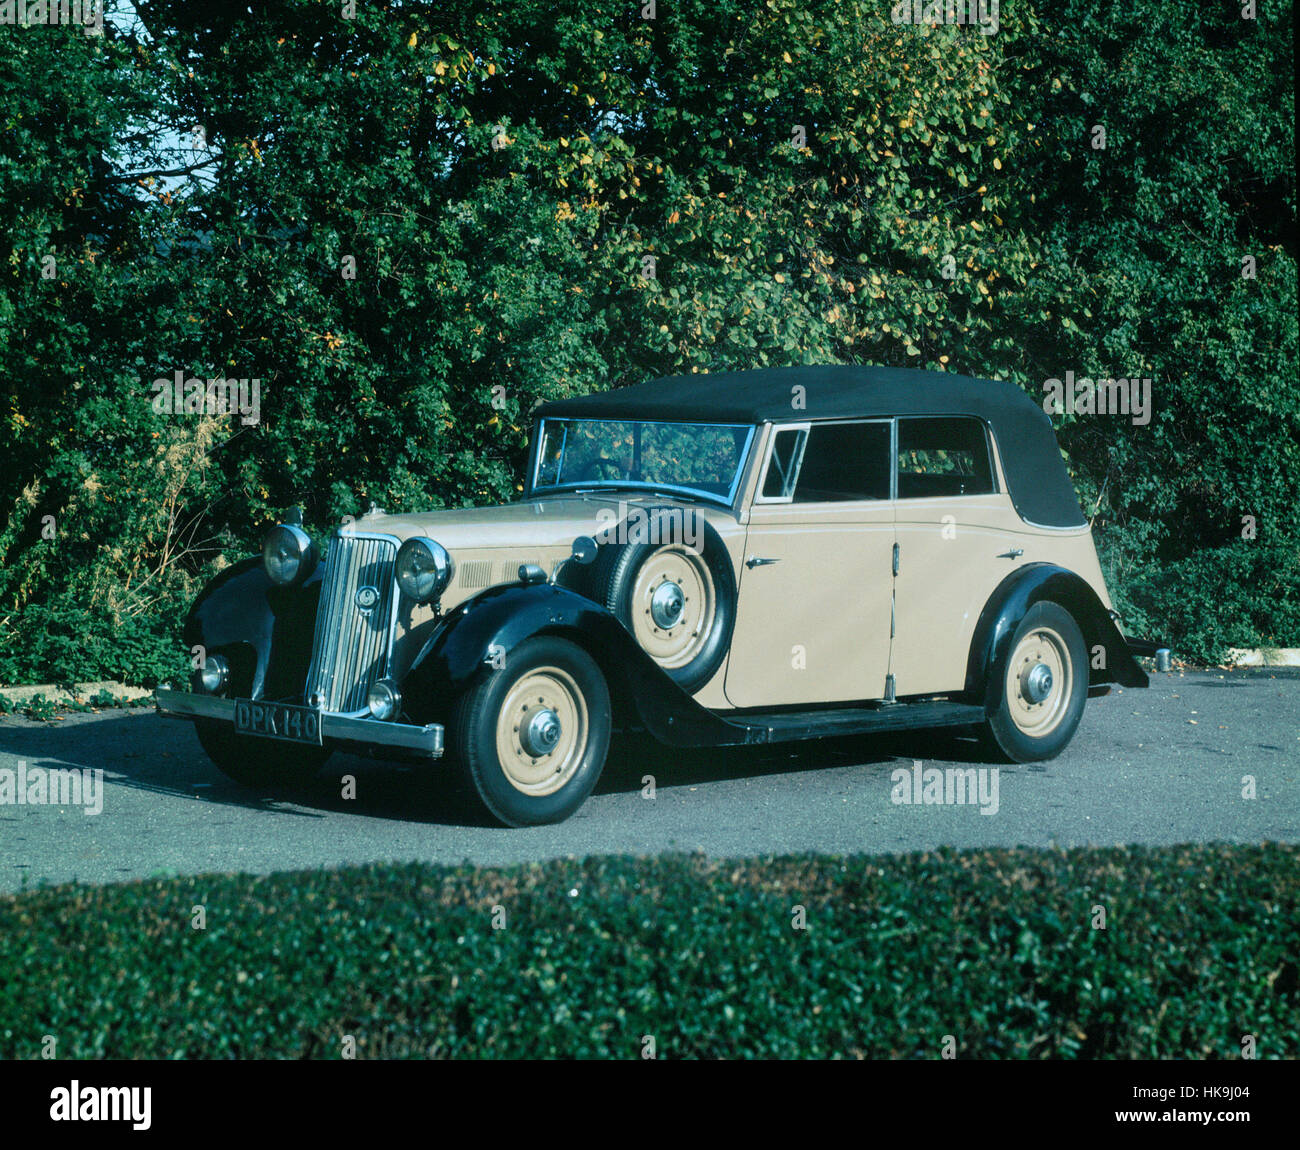 1949 Armstrong Siddeley Hurricane - Stock Image